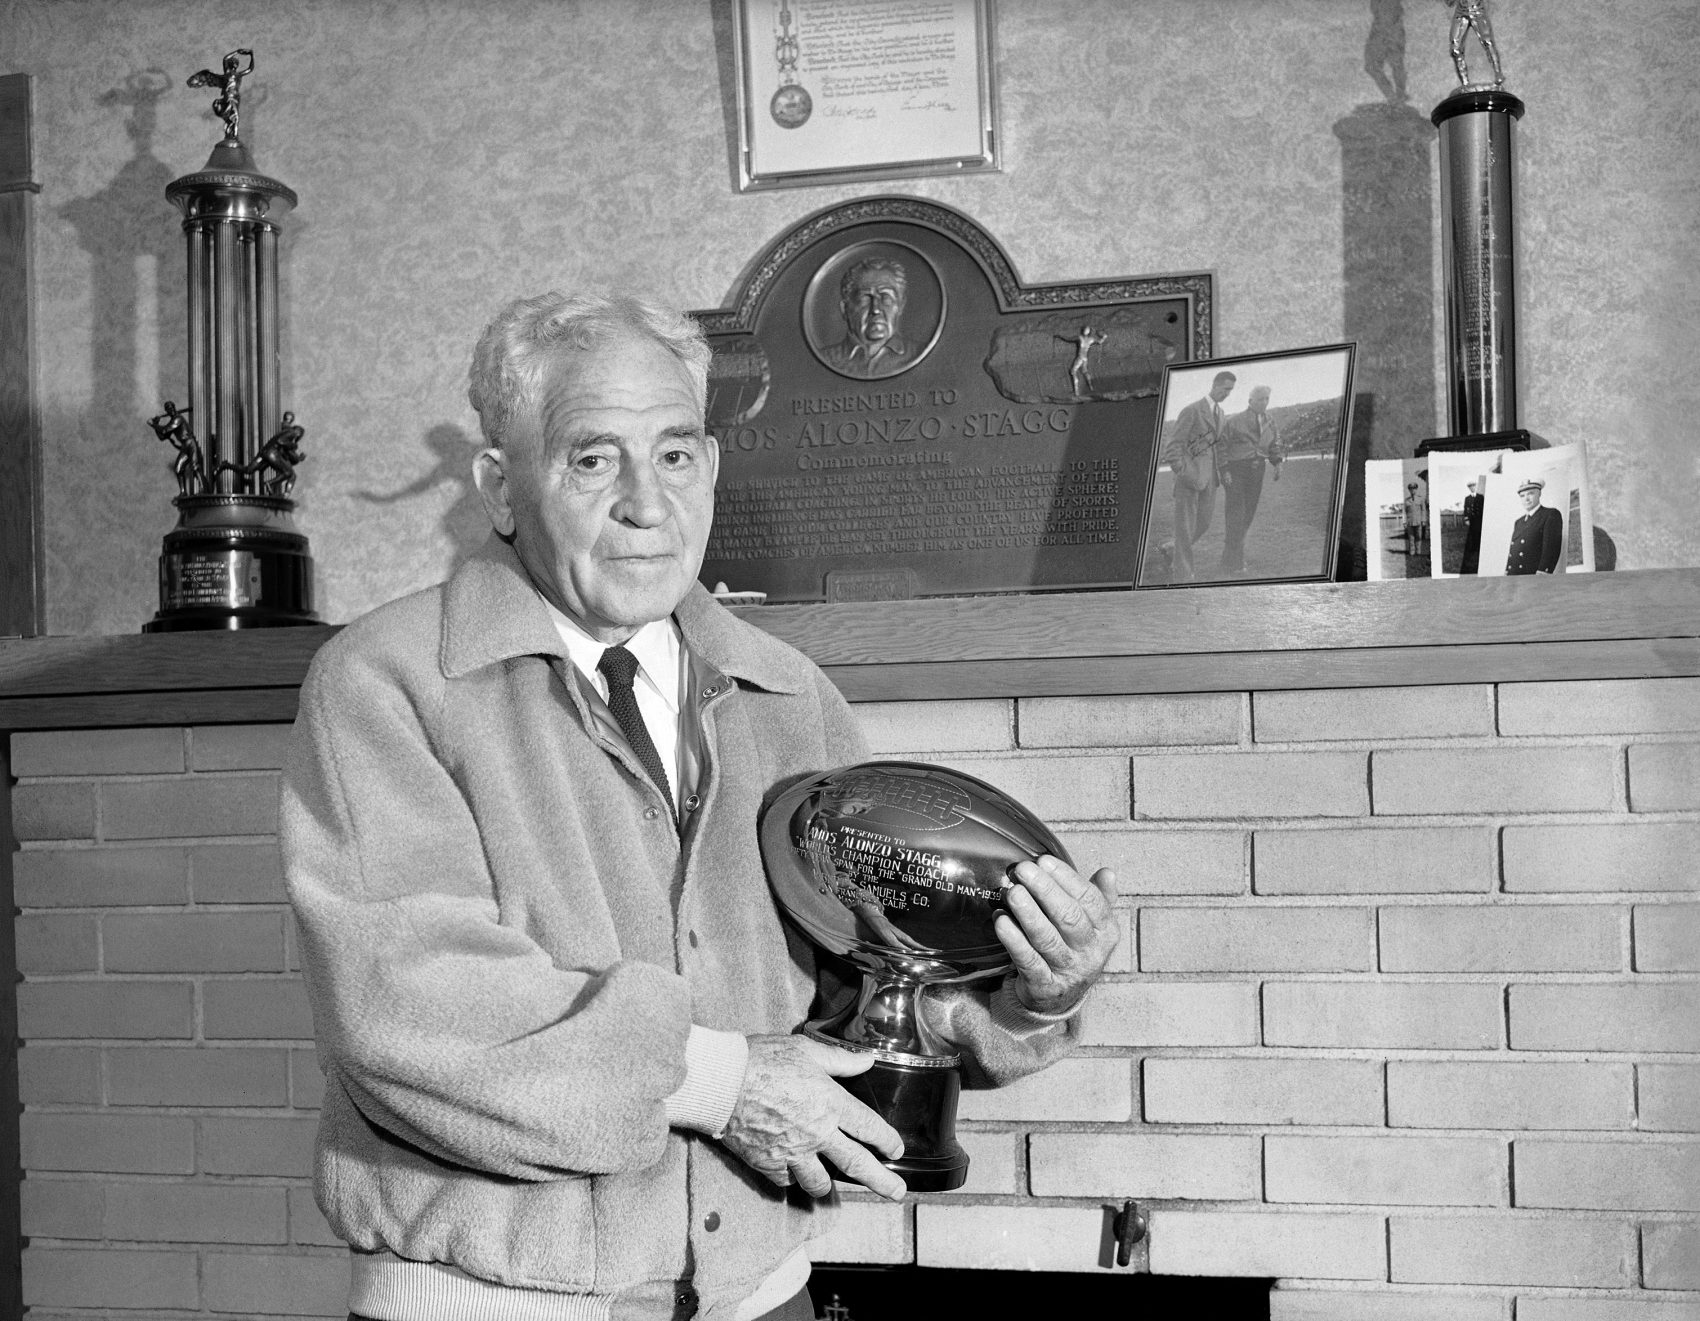 Amos Alonzo Stagg was a pioneering coach in football and baseball. In his later years, he used his platform to fight for an unexpected cause. (AP/Joe Rosenthal)